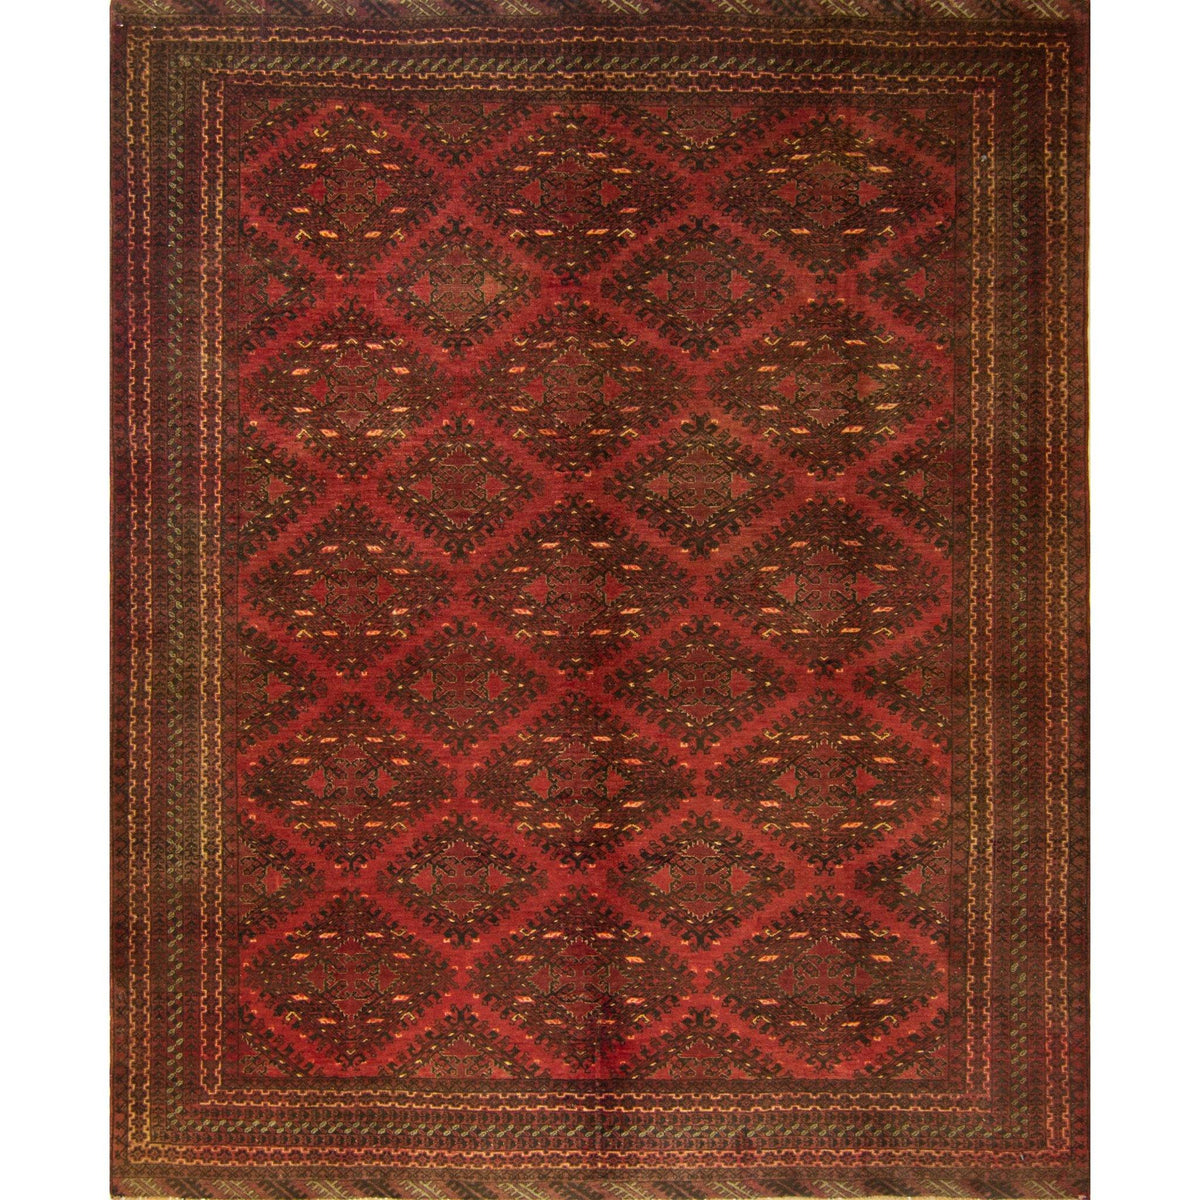 Vintage Hand-knotted 100% Wool Tribal Turkmen Rug 197cm x 242cm Persian-Rug | House-of-Haghi | NewMarket | Auckland | NZ | Handmade Persian Rugs | Hand Knotted Persian Rugs